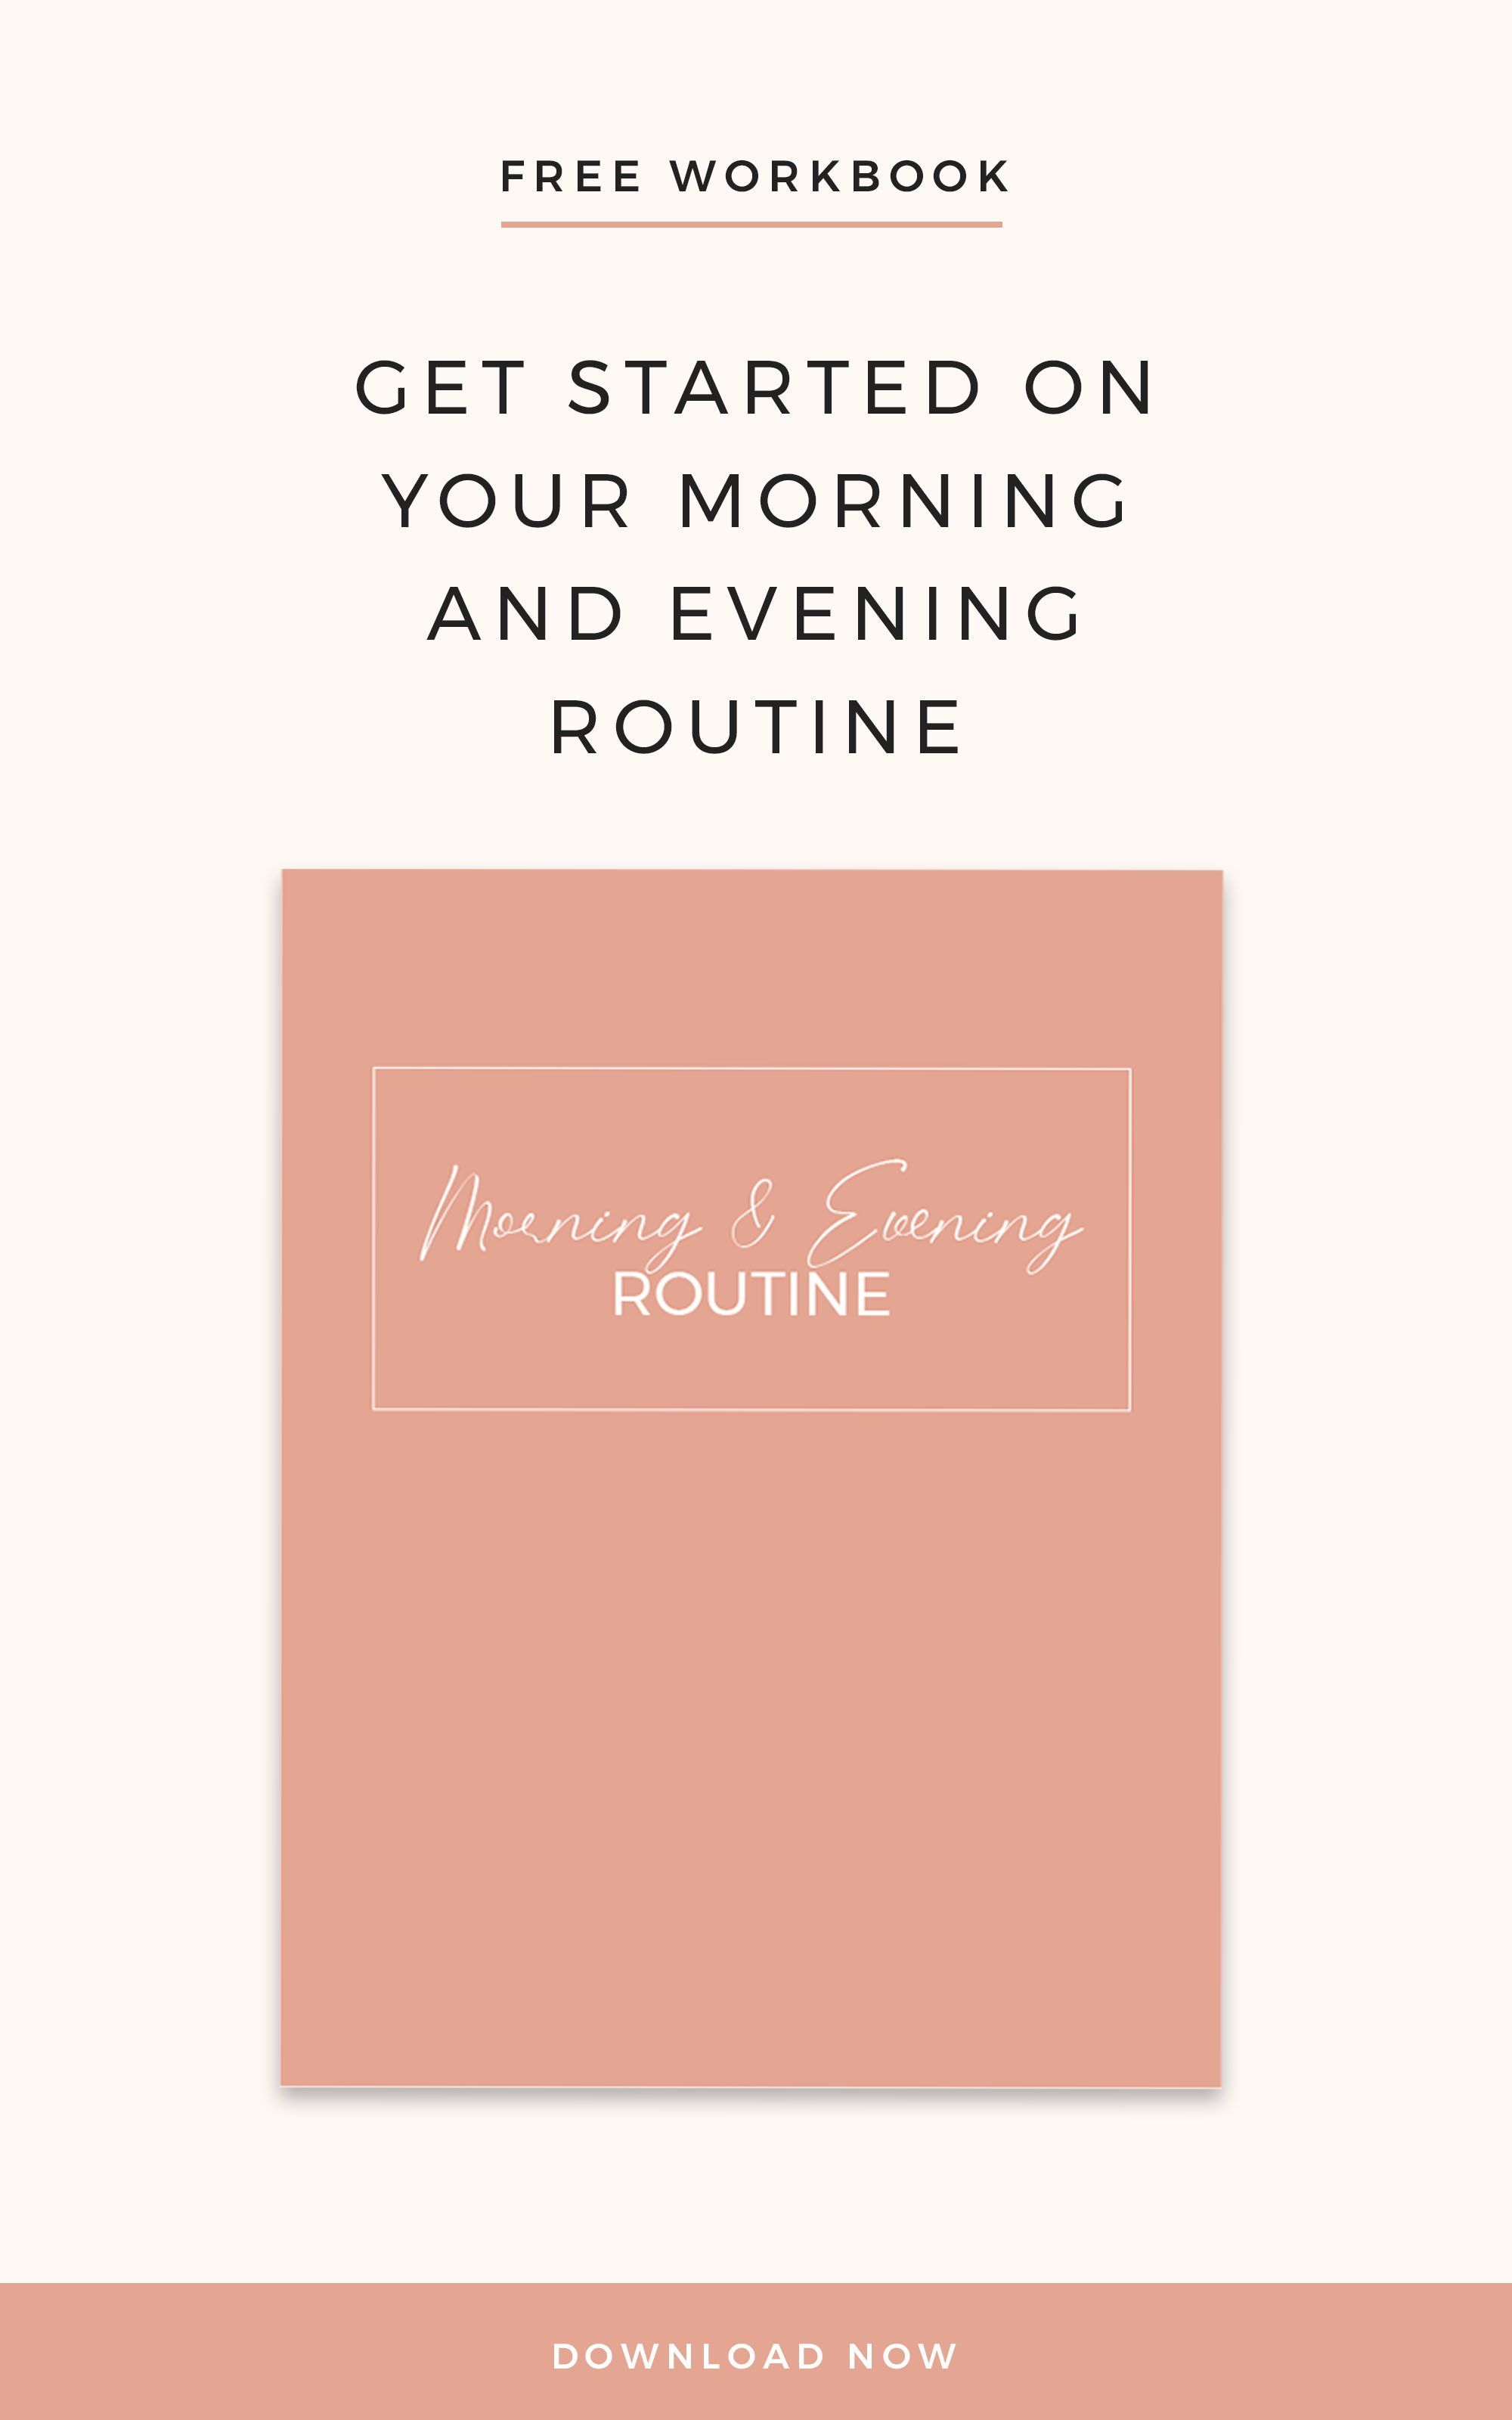 Get Started On Your Morning And Evening Routine With This